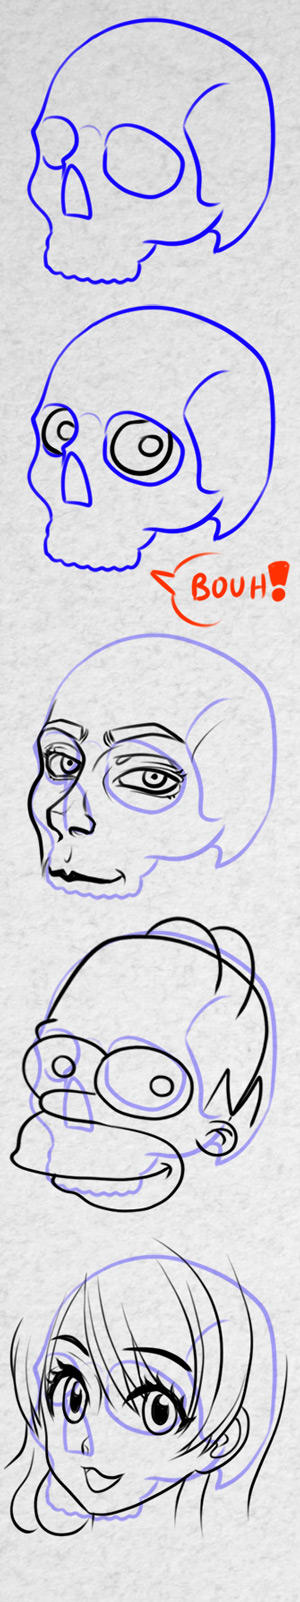 How to draw any face from the skull